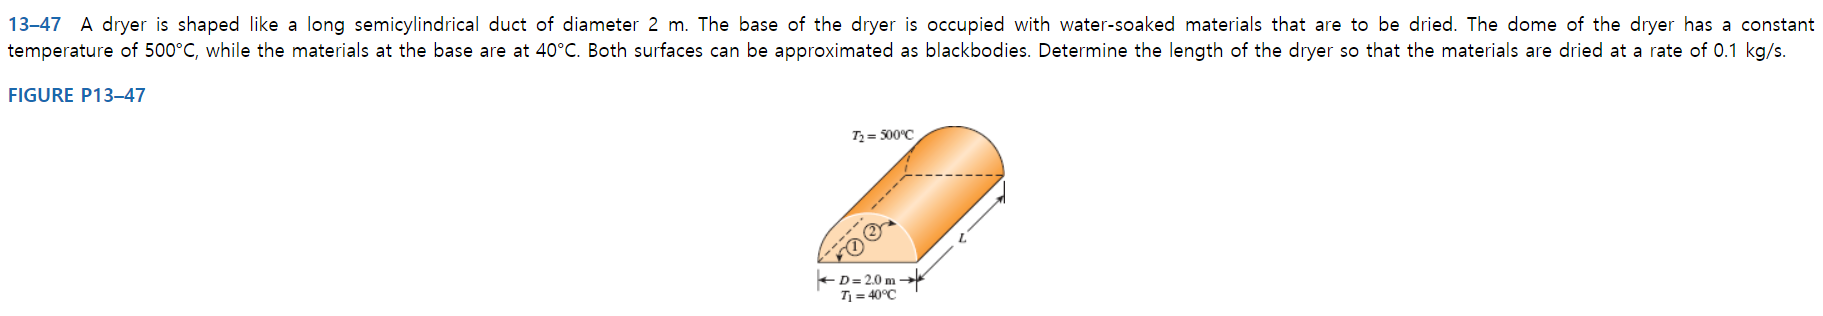 13-47 A dryer is shaped like a long semicylindrical duct of diameter 2 m. The base of the dryer is occupied with water-soaked materials that are to be dried. The dome of the dryer has a constant temperature of 500°C, while the materials at the base are at 40°C. Both surfaces can be approximated as blackbodies. Determine the length of the dryer so that the materials are dried at a rate of 0.1 kg/s. FIGURE P13–47 Tz = 500°C ----- -D= 2.0 m - T = 40°C